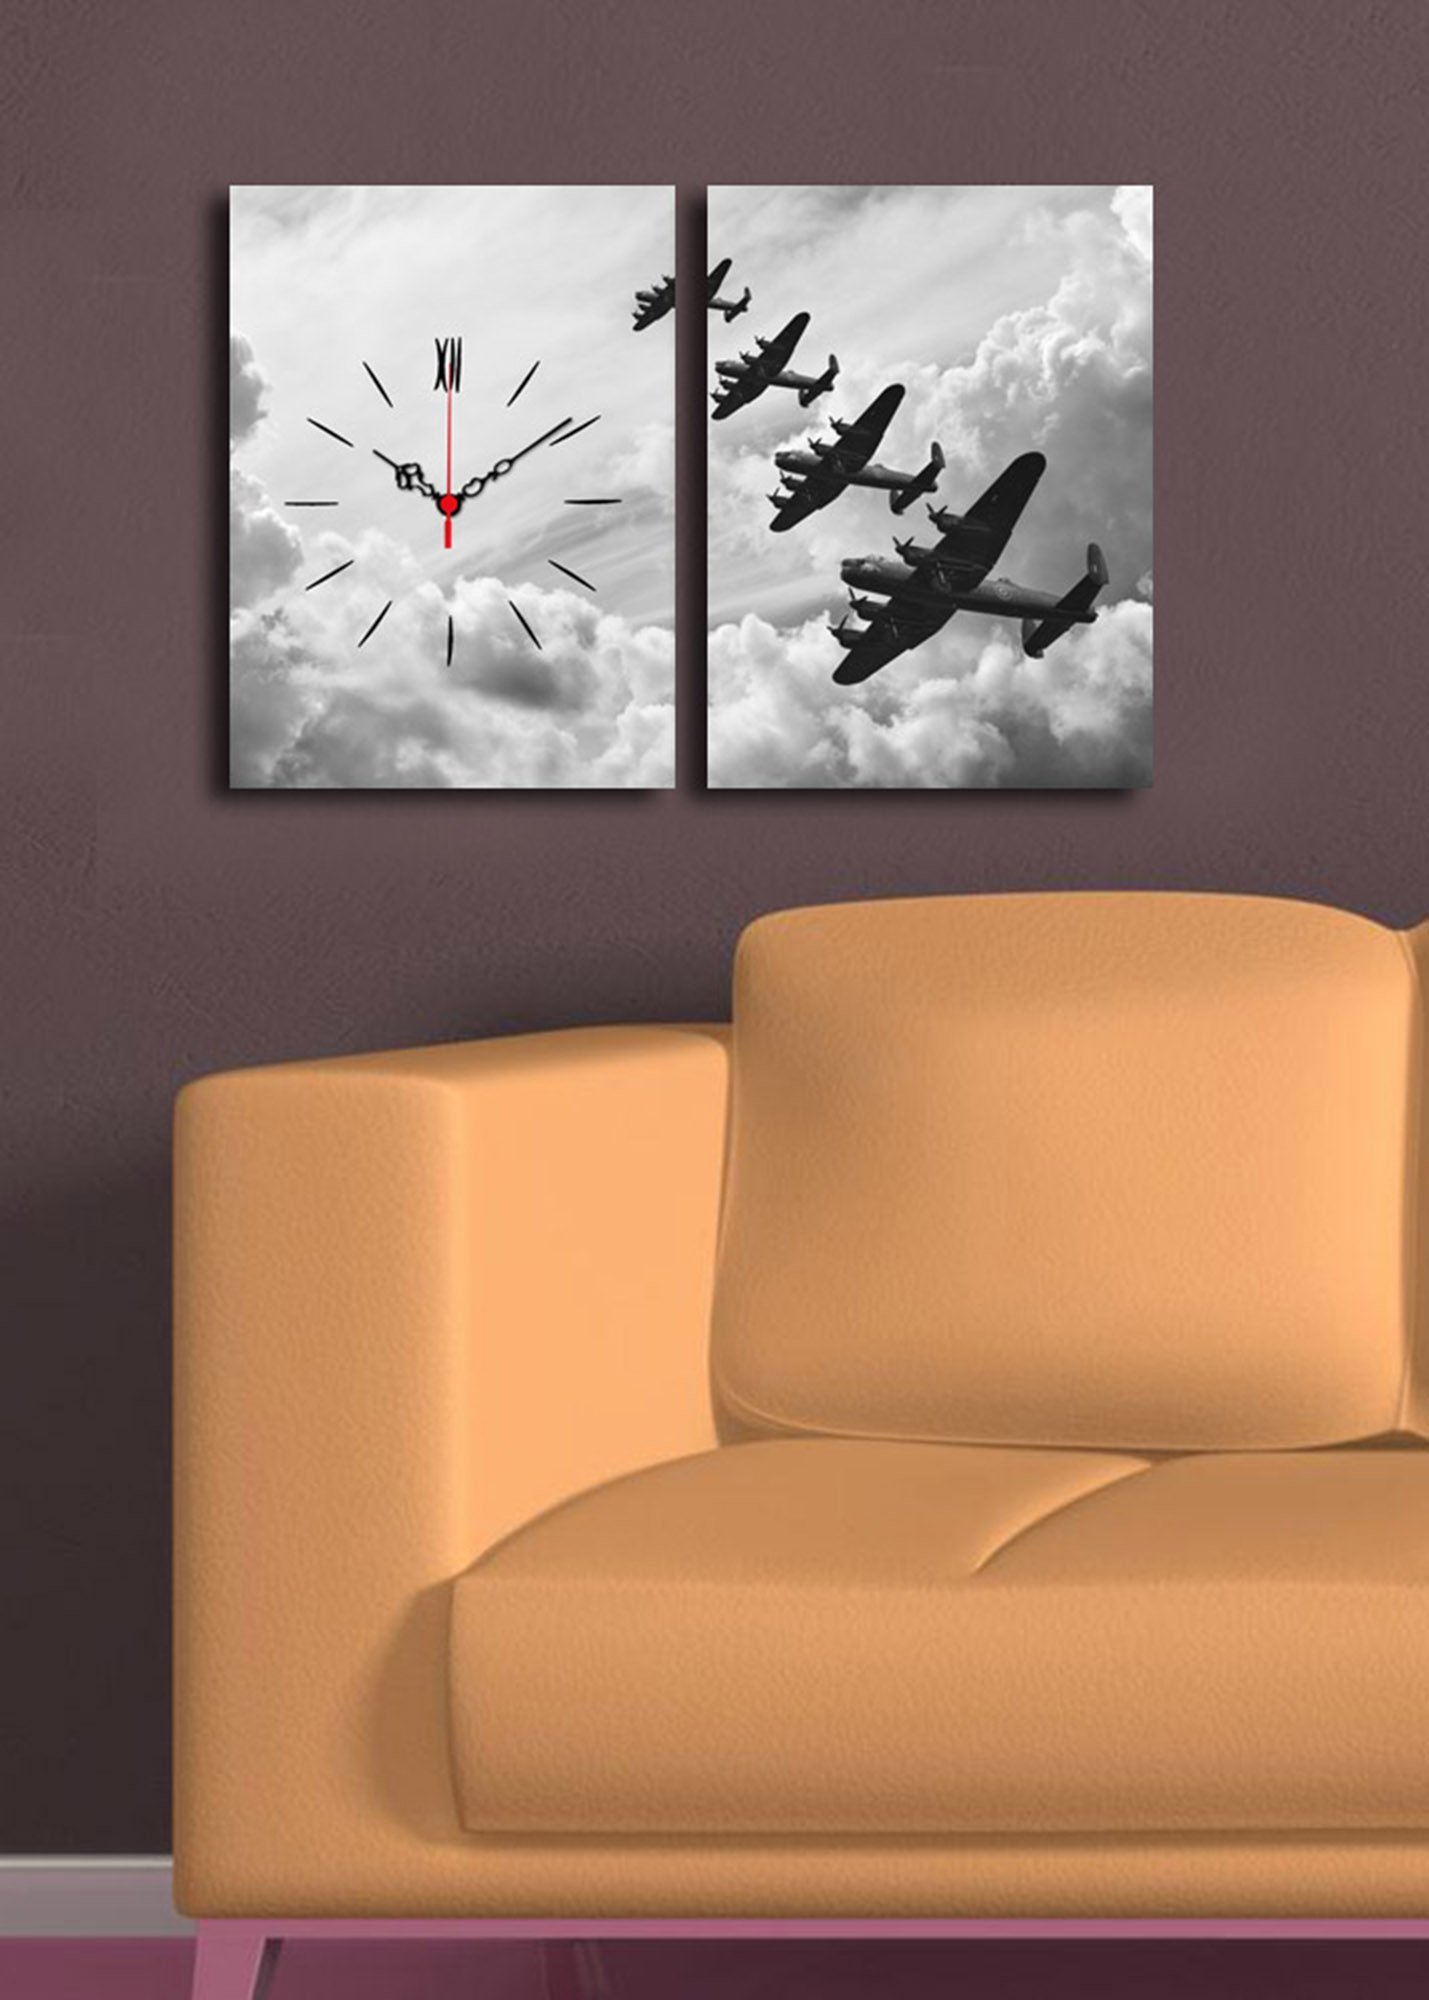 LaModaHome Home Decorative Canvas Wall Art with Real Running Clock 2 Pcs (Total 25'' x 16'') Wooden Thick Frame Painting Plane Sky Air War Cloud Sun Flying Pilot